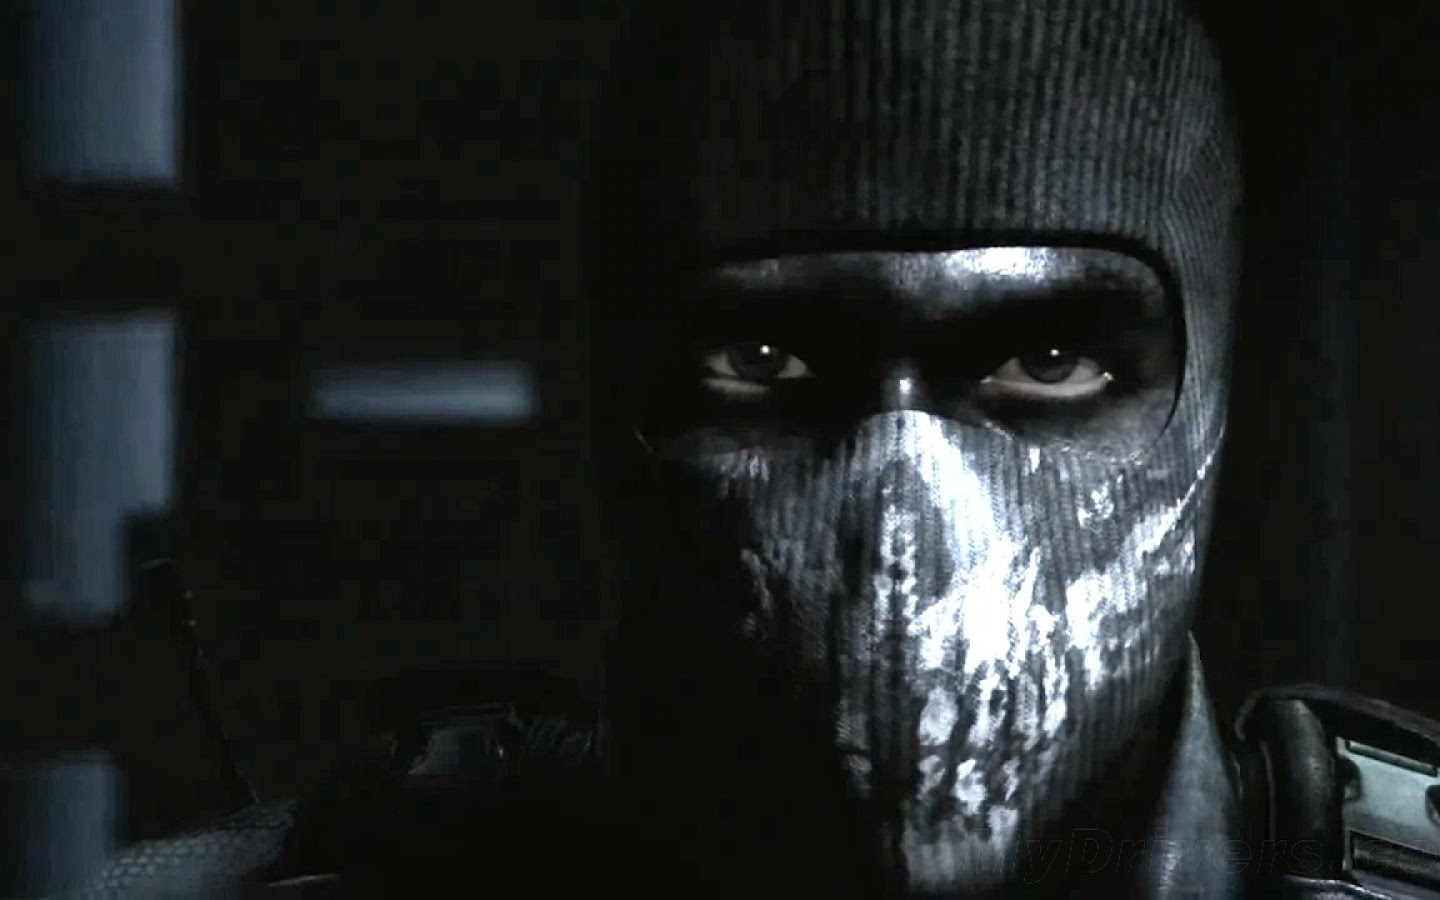 Free Download Call Of Duty Ghosts 2 Hd Wallpapers Walls720